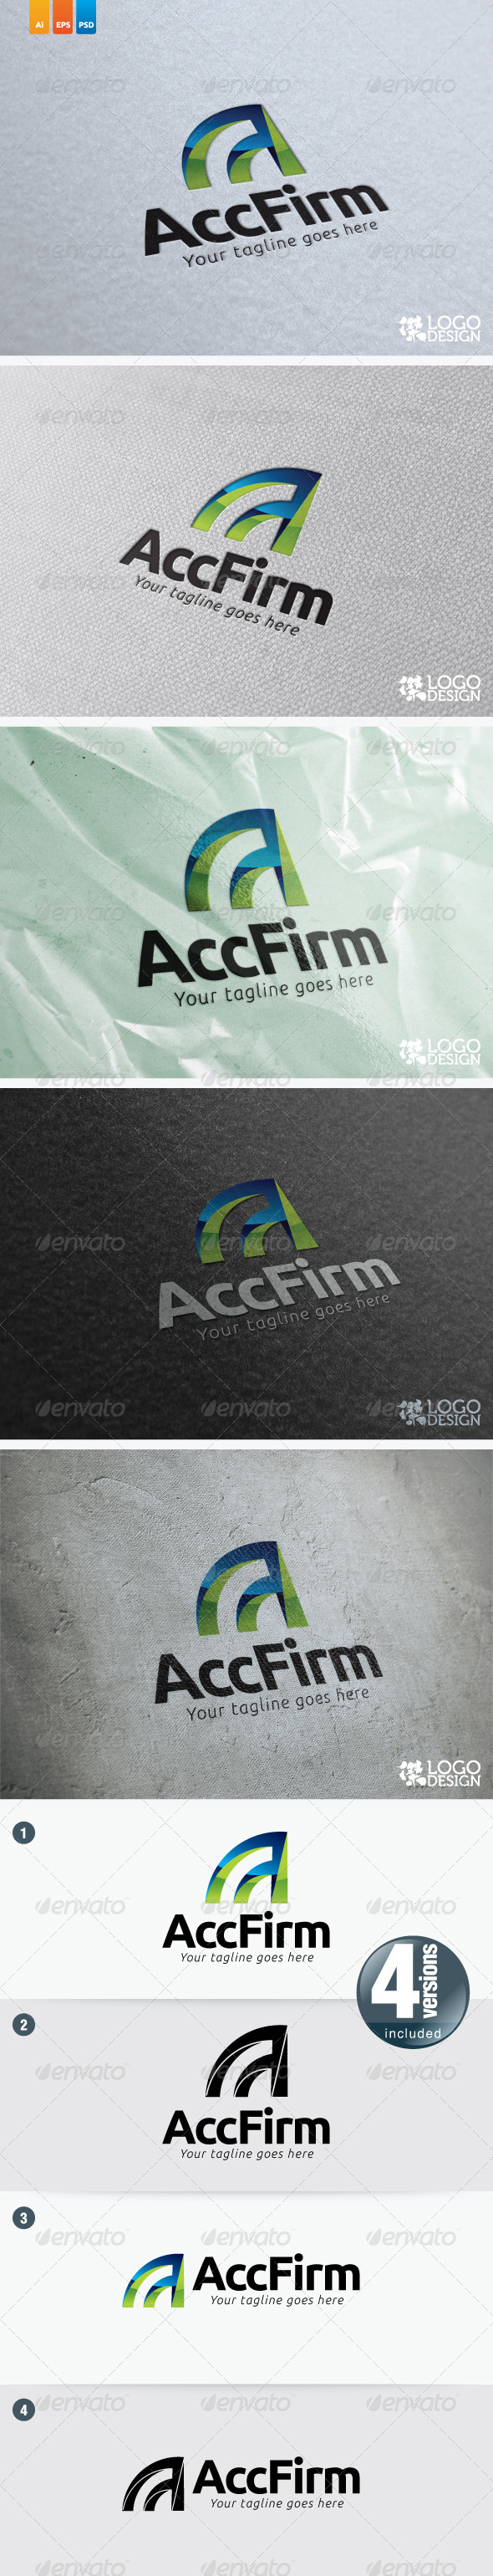 Account Firm - Vector Abstract